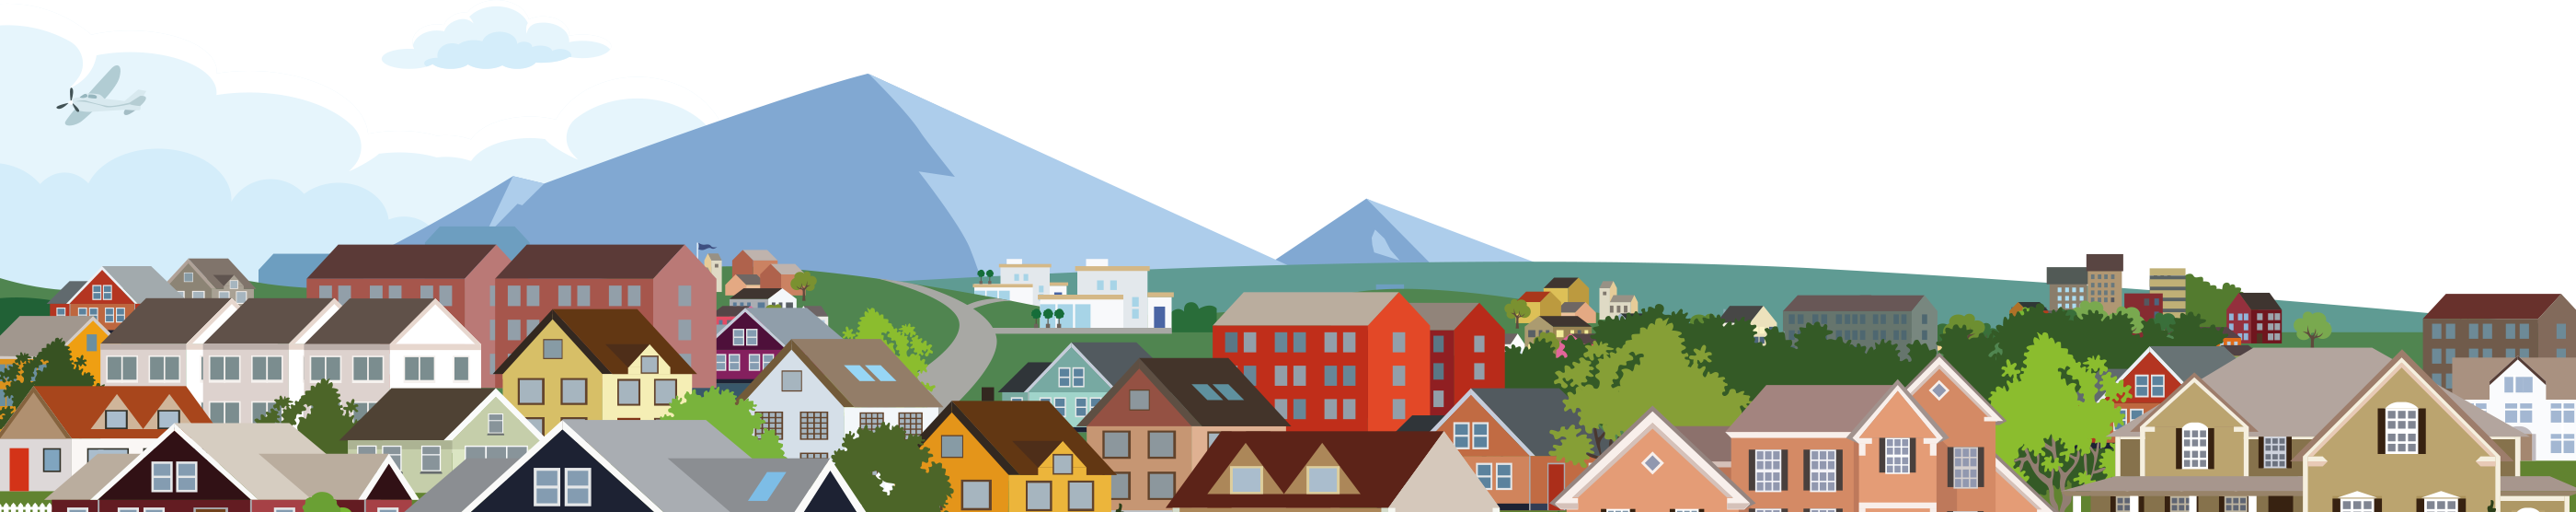 Graphic illustration of a typical town in front of mountain peaks.